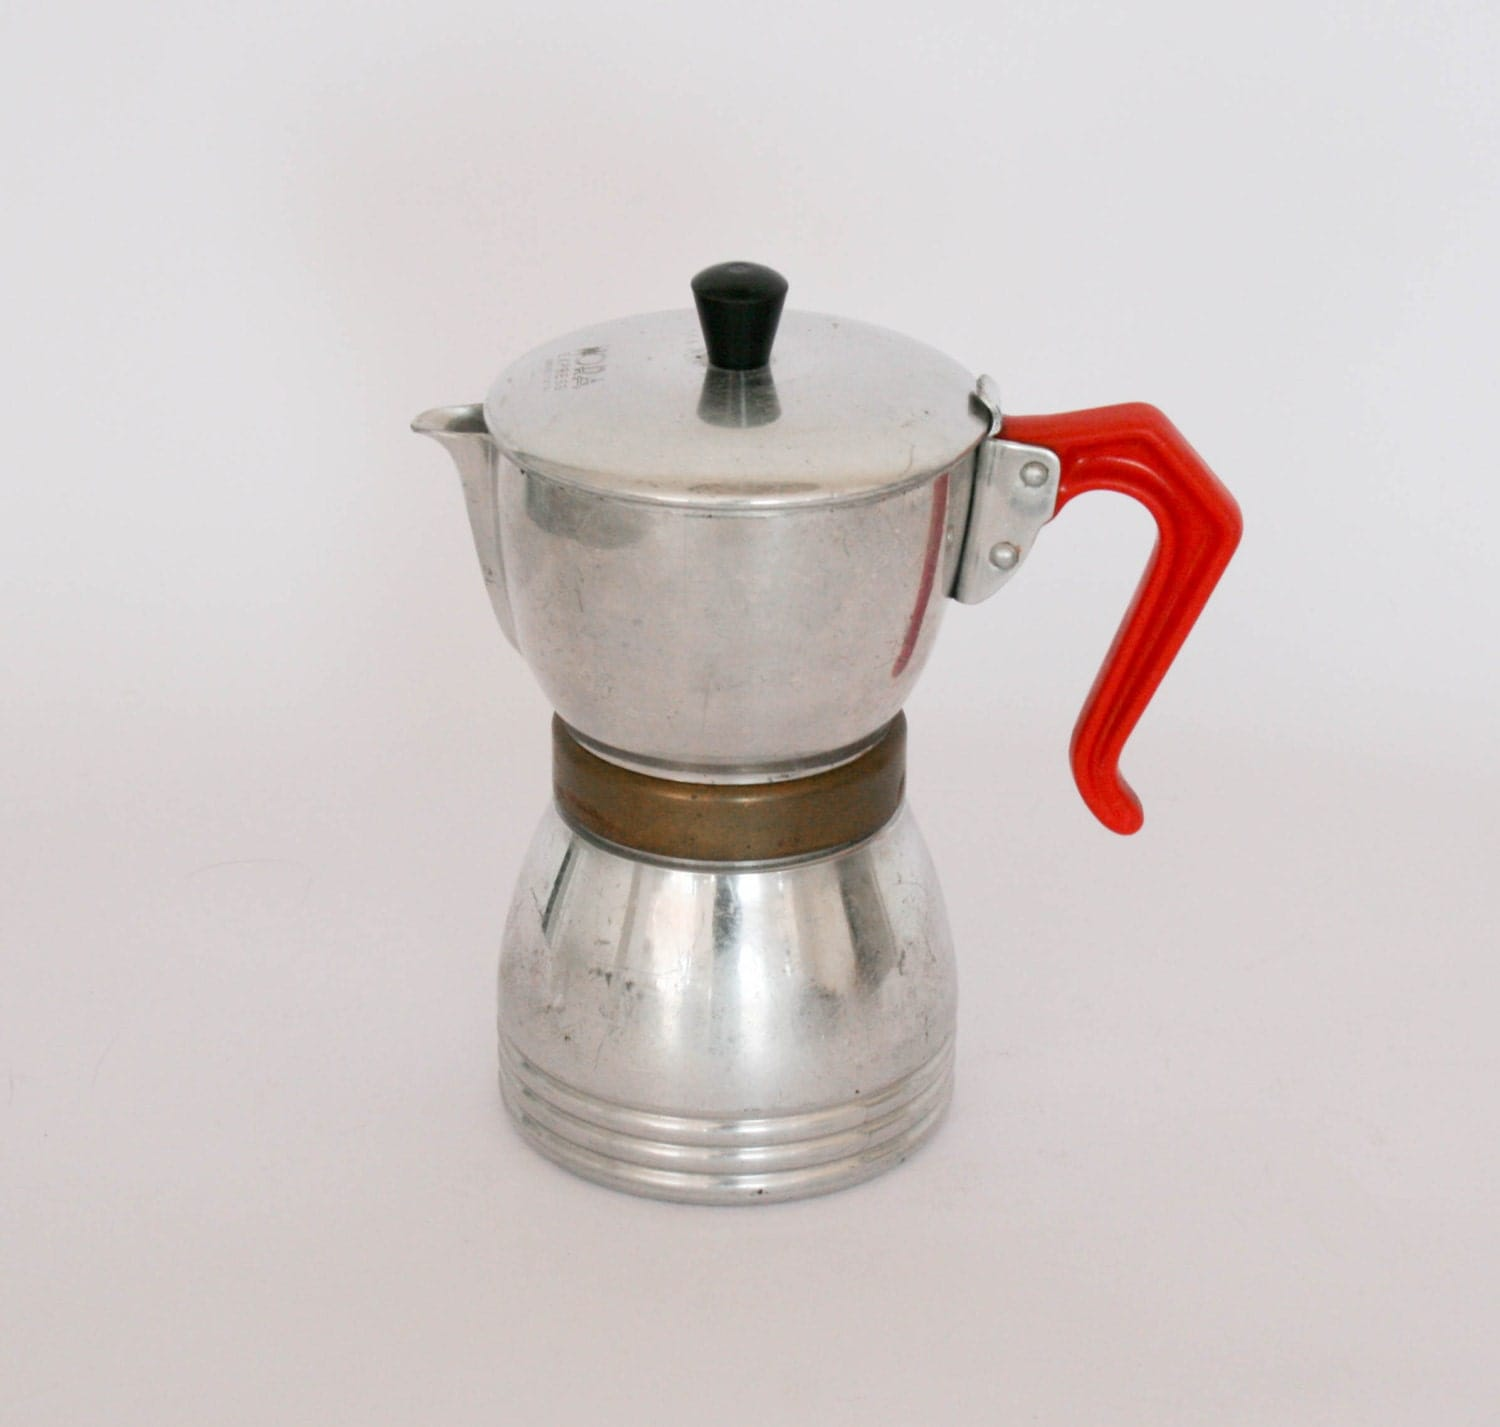 Italian Coffee Maker Old : Nora Express Vintage Italian Coffee Maker / Coffee Pot